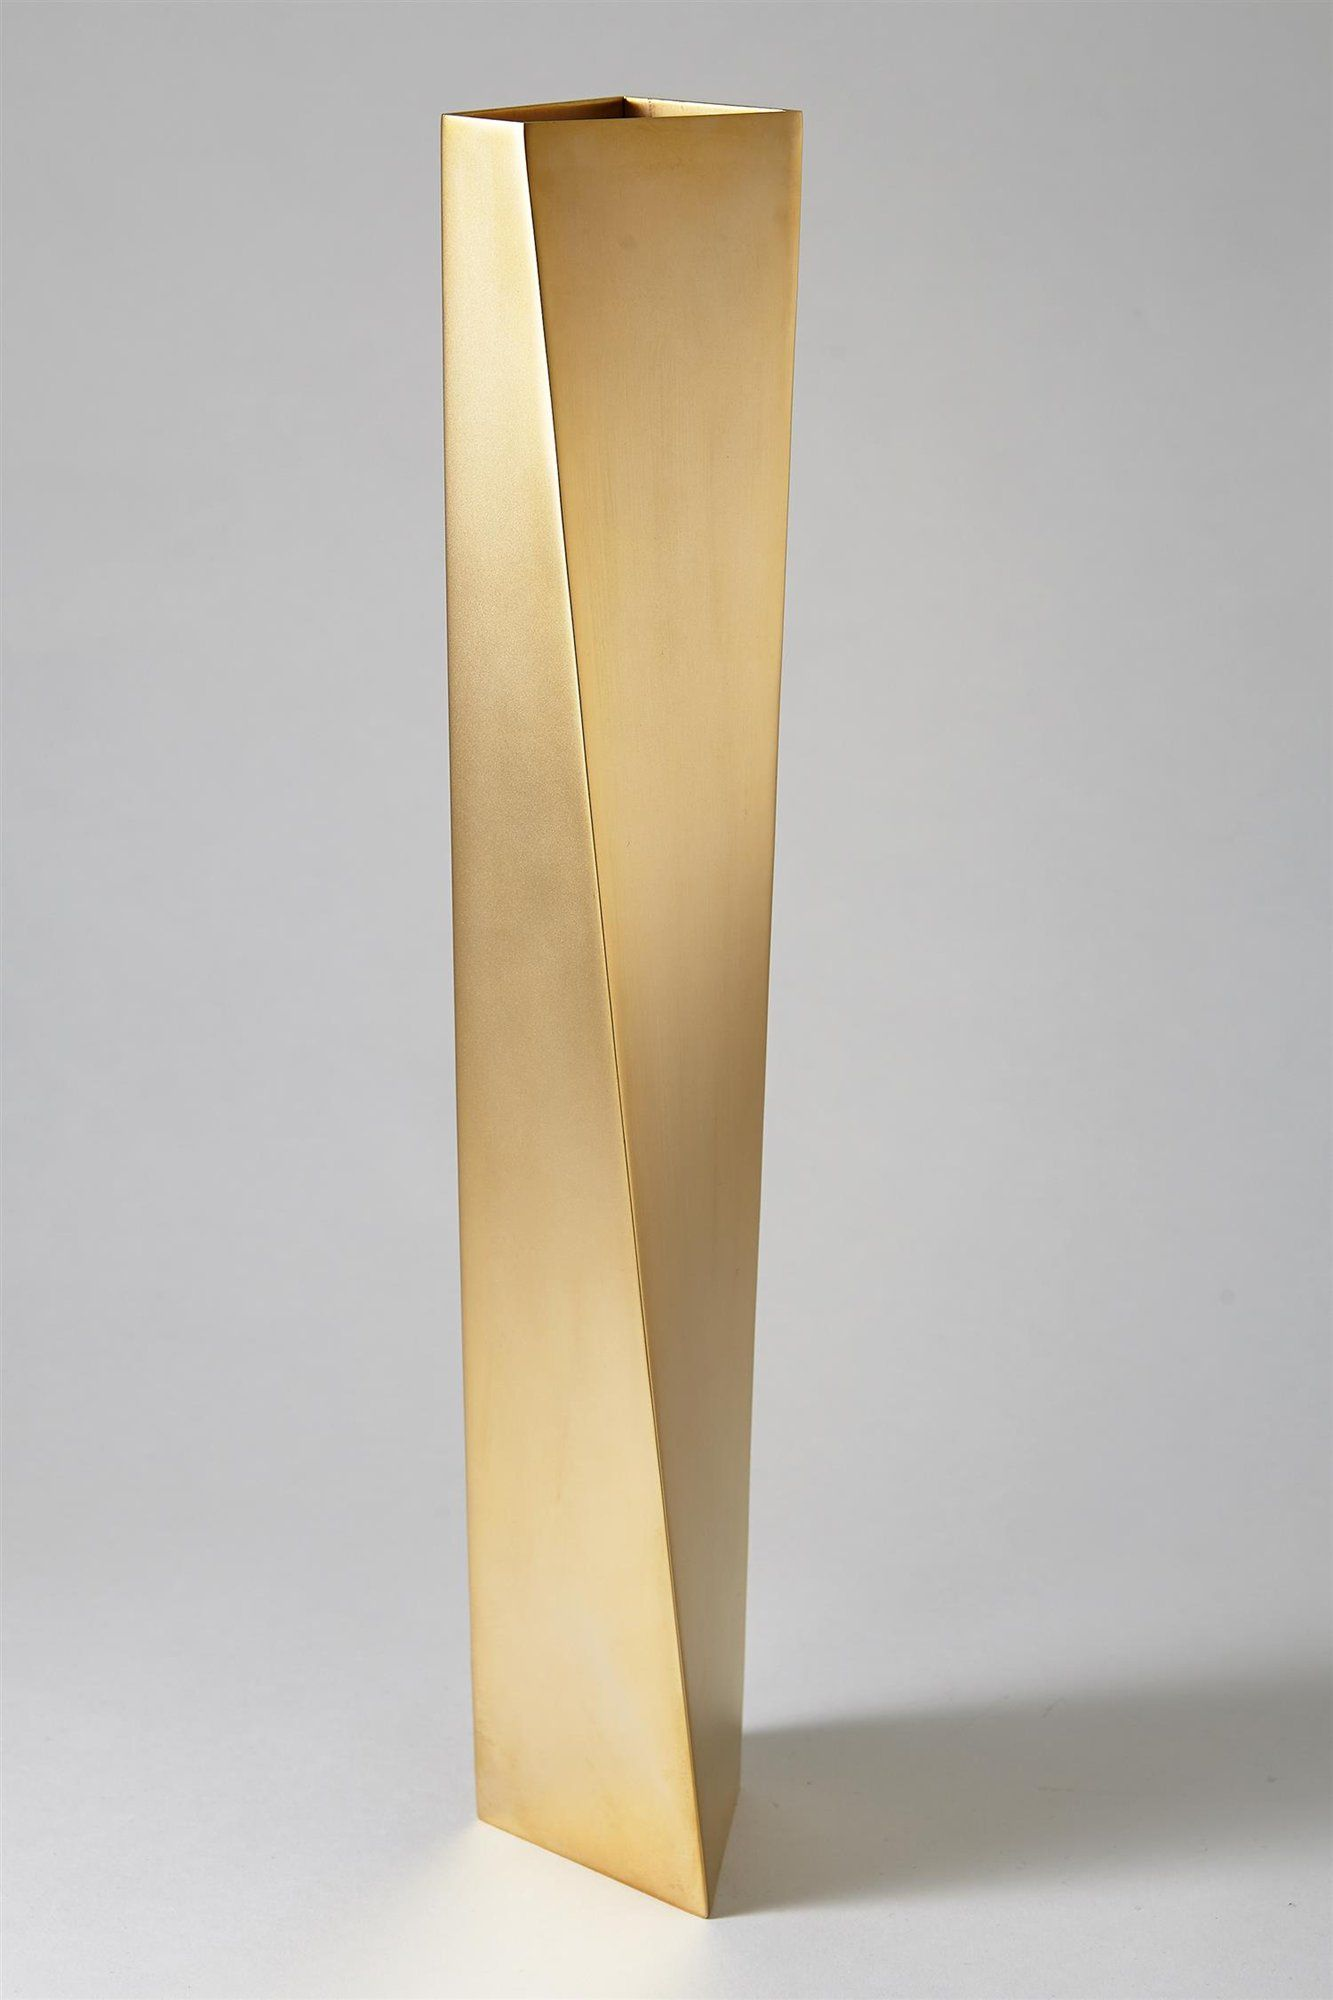 ZAHA HADID for Alessi : 'Crevasse' Vase, Italy, 2005 | From the limited edition of 999; stainless steel with gold PVD matt coating; 42 cm height | MODERNITY of Stockholm